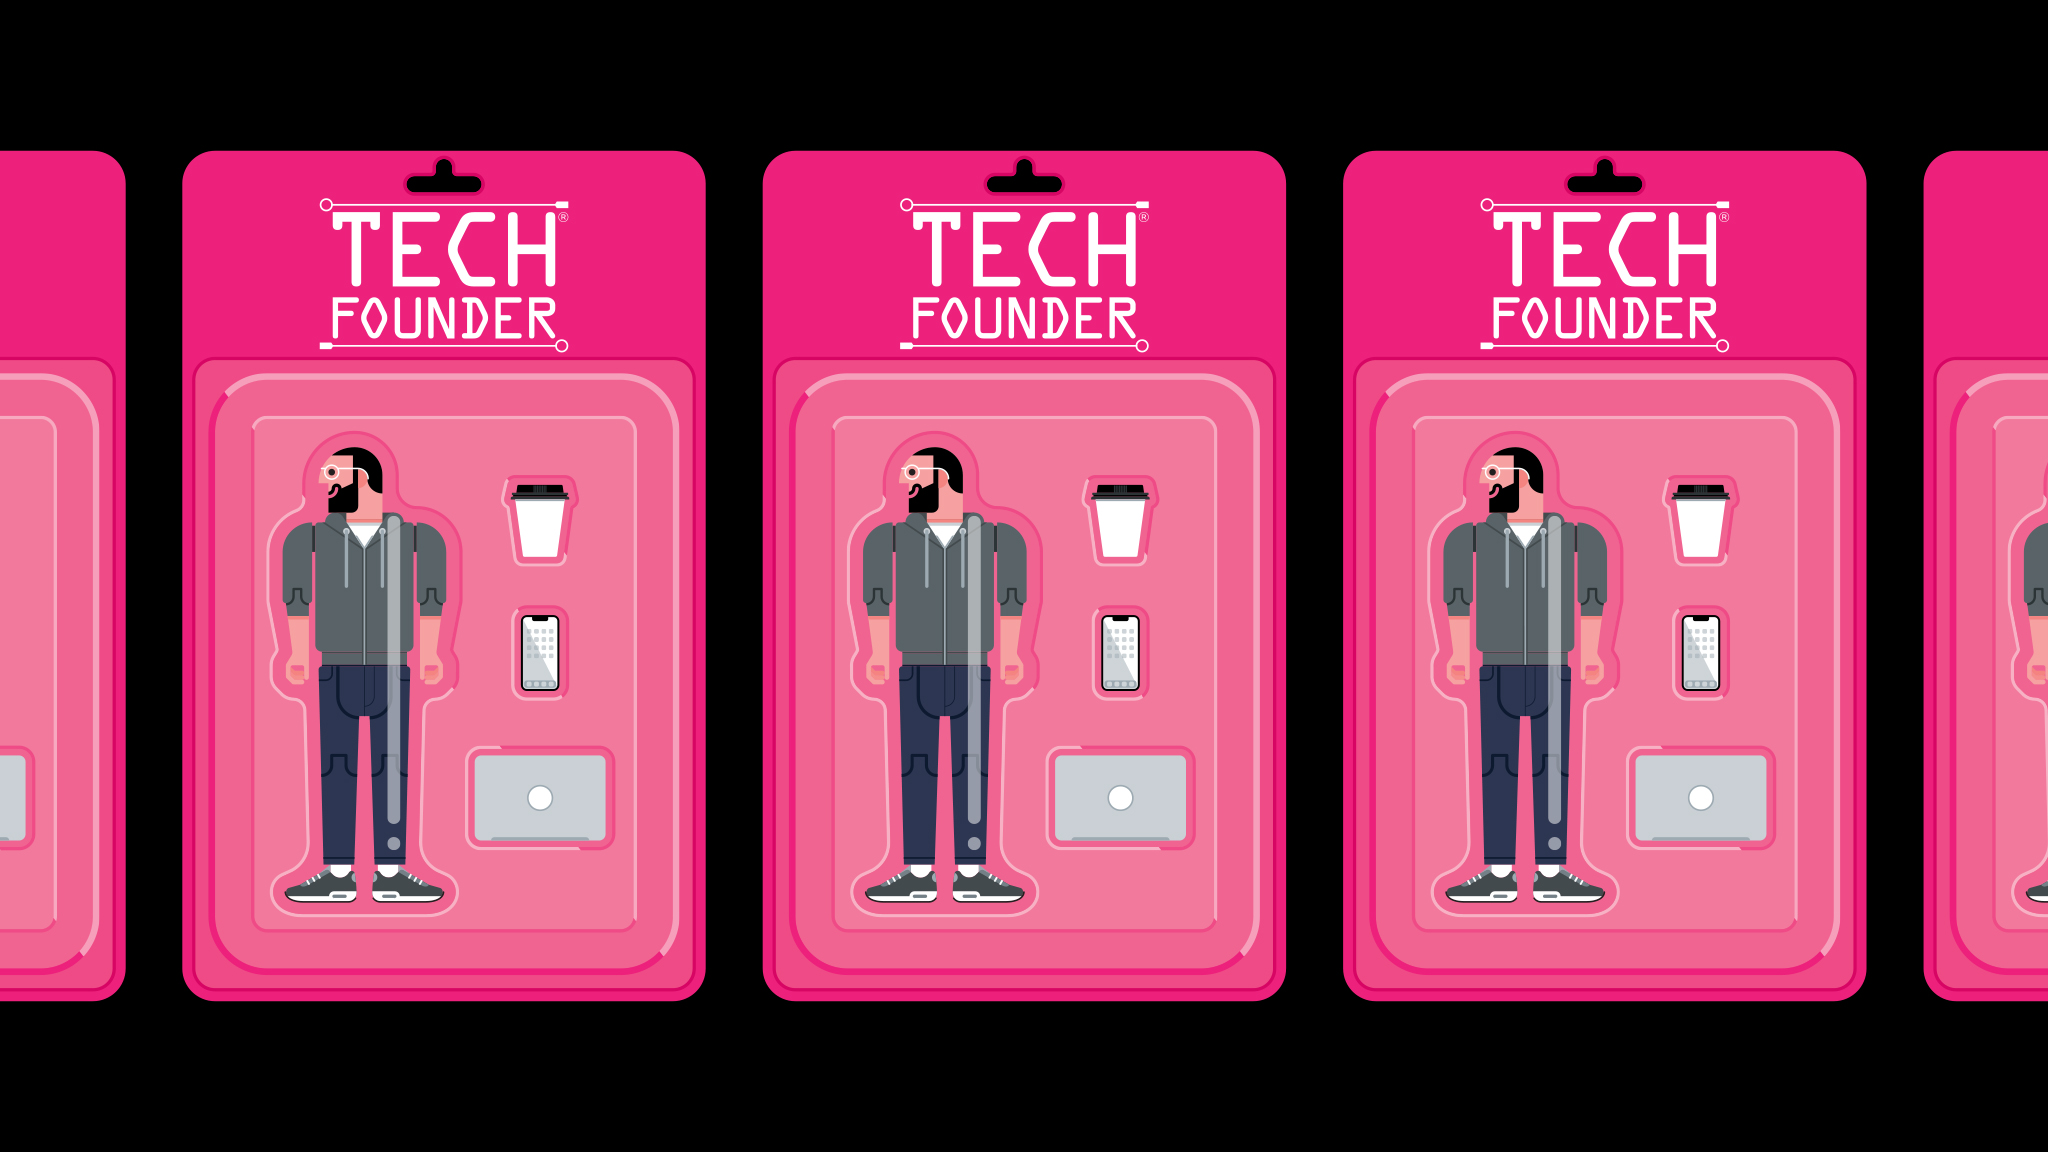 Silicon Valley's founder factory | Financial Times